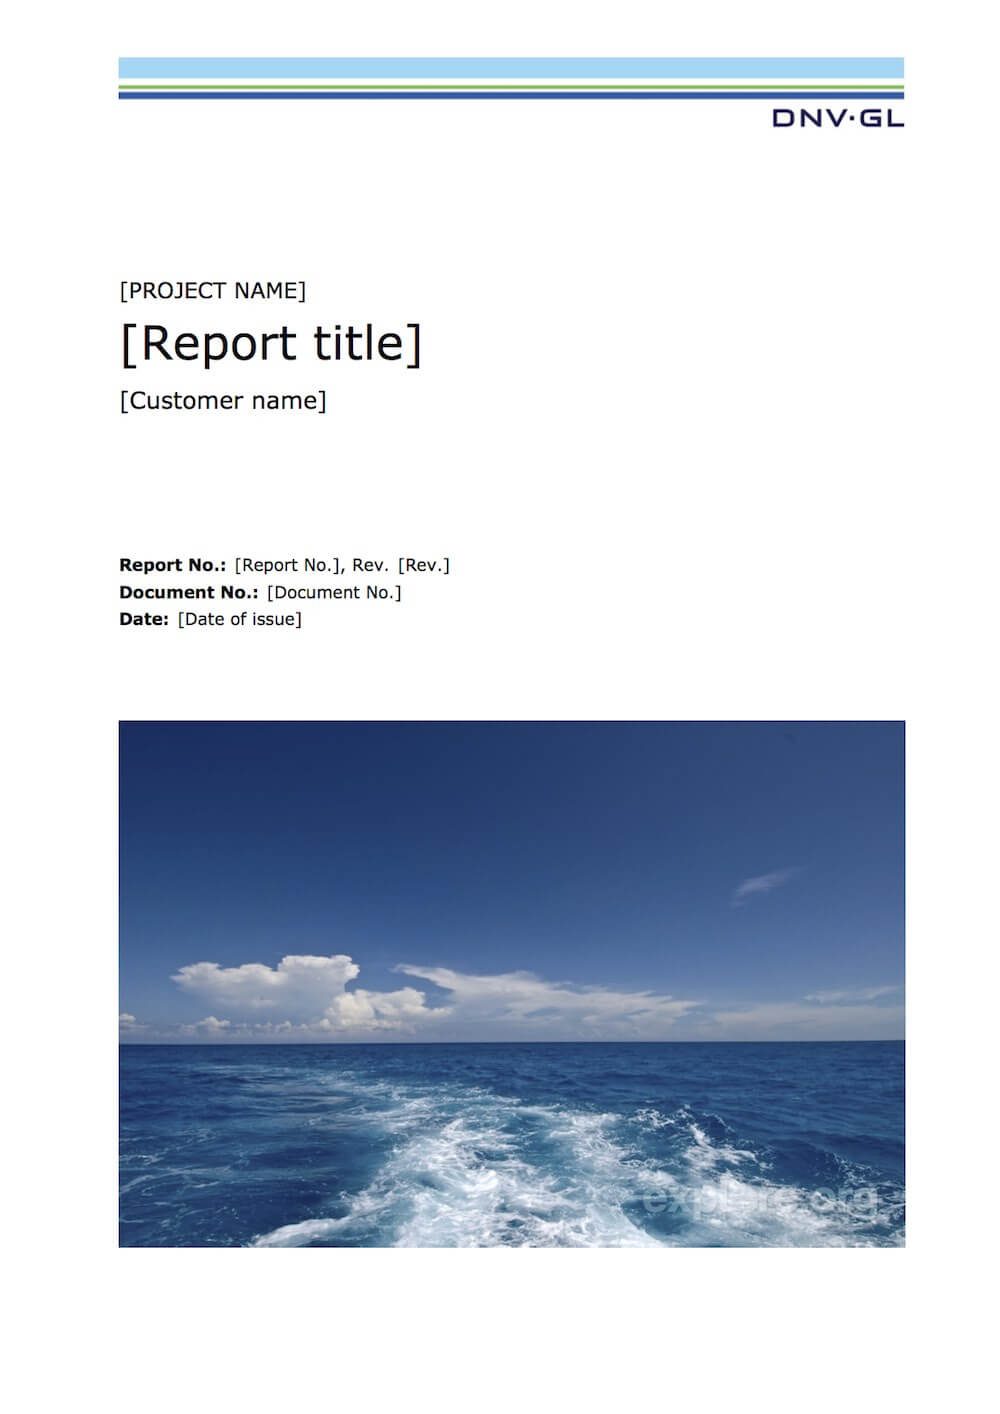 Latex Typesetting - Showcase Within Latex Project Report Template